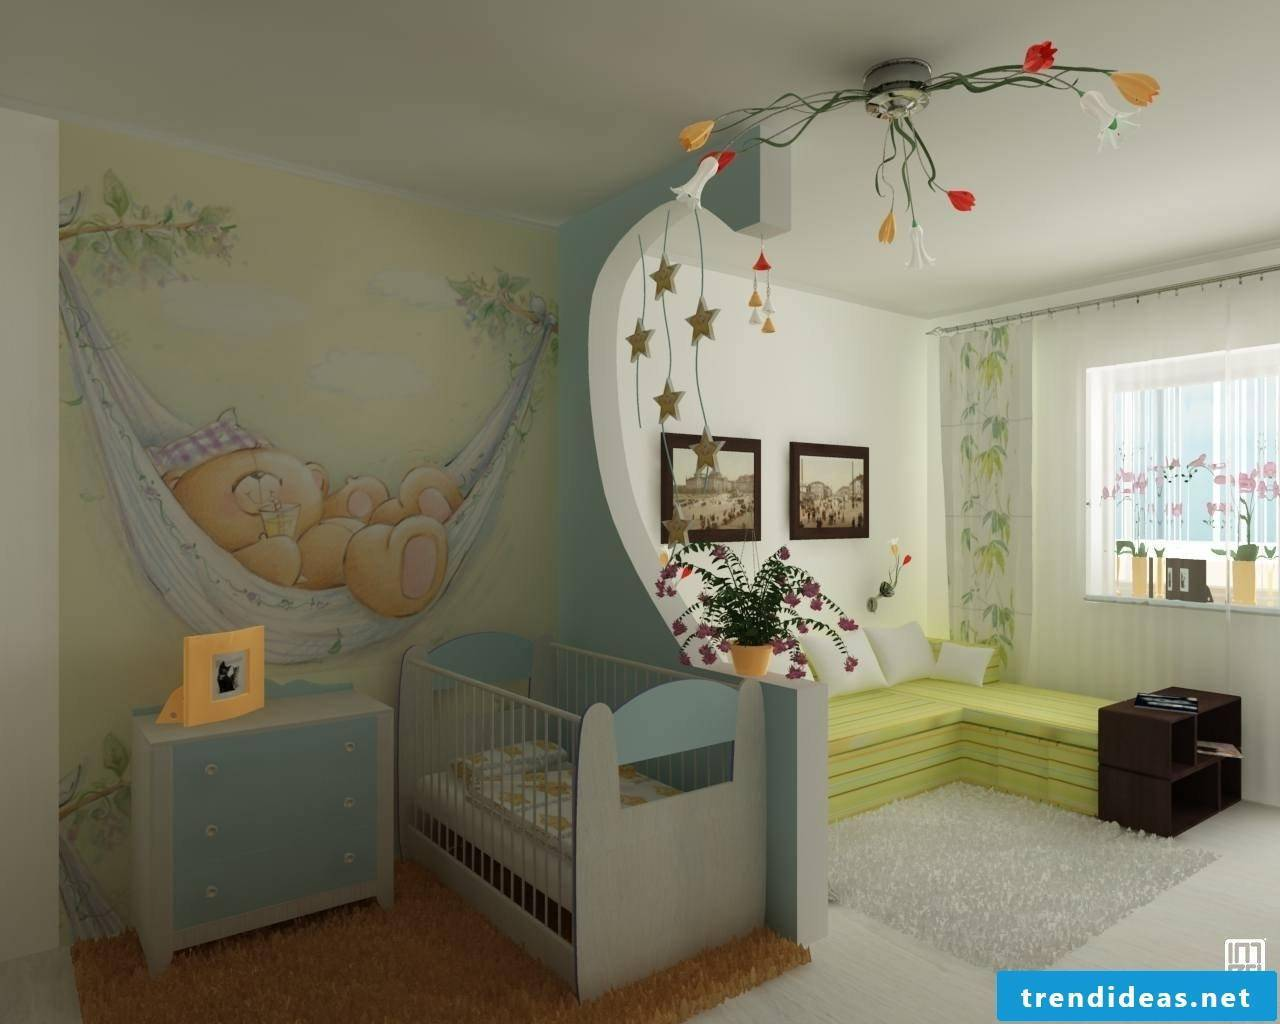 Nursery design, soft colors and coziness